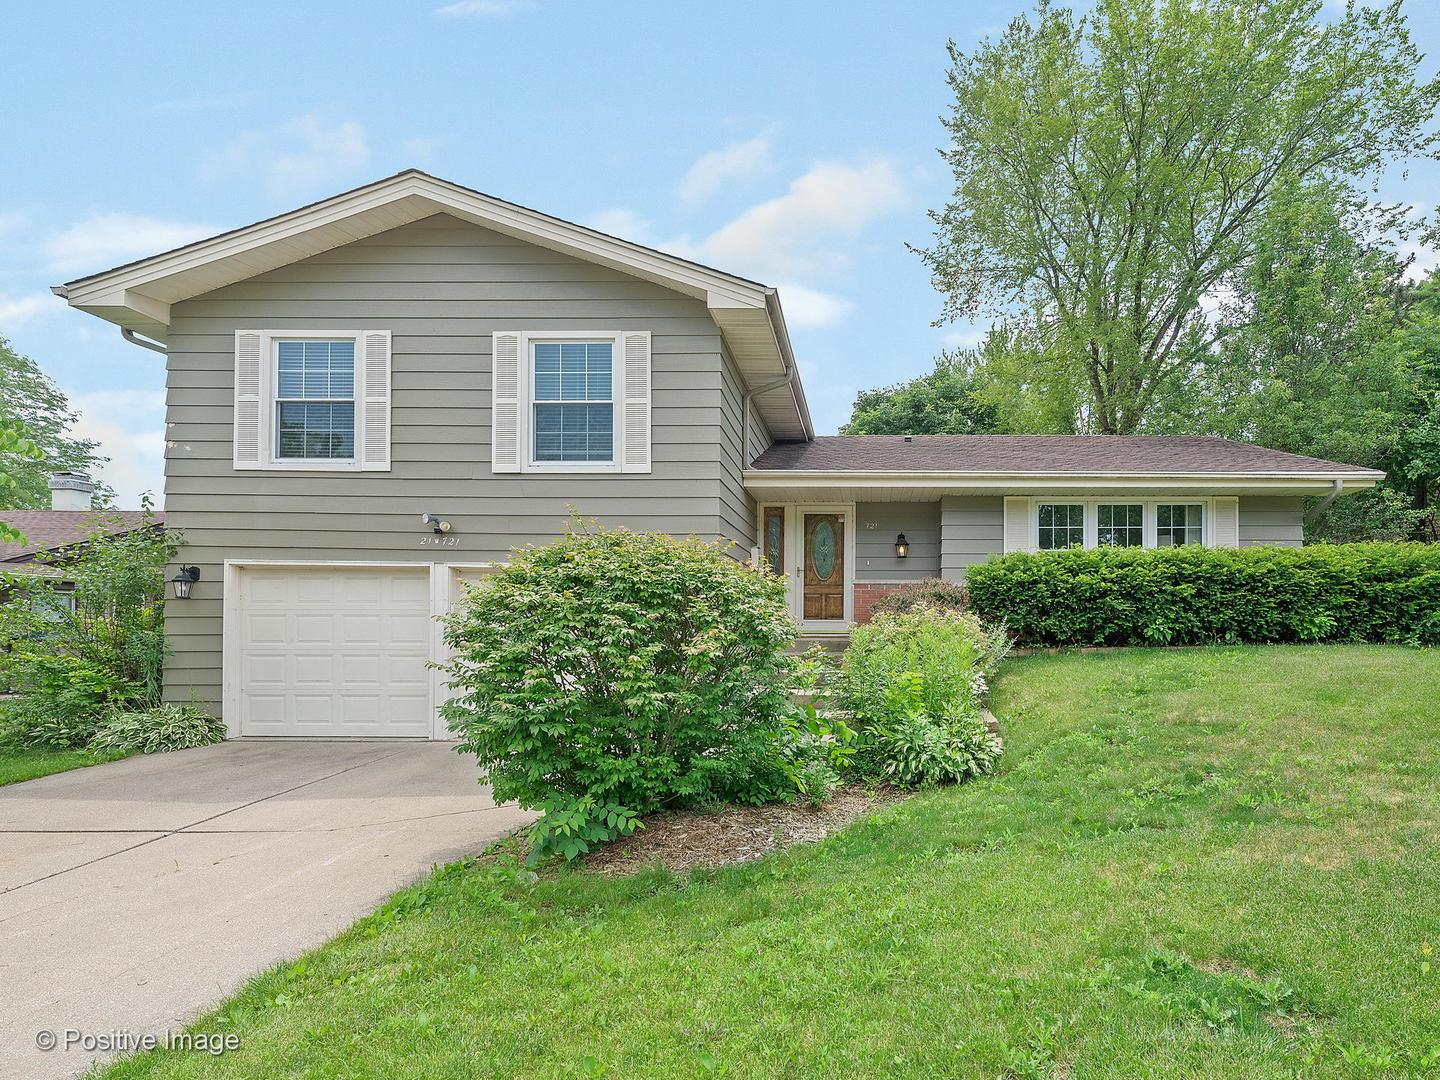 21W721 Huntington Road, Glen Ellyn, IL 60137 - #: 10934704